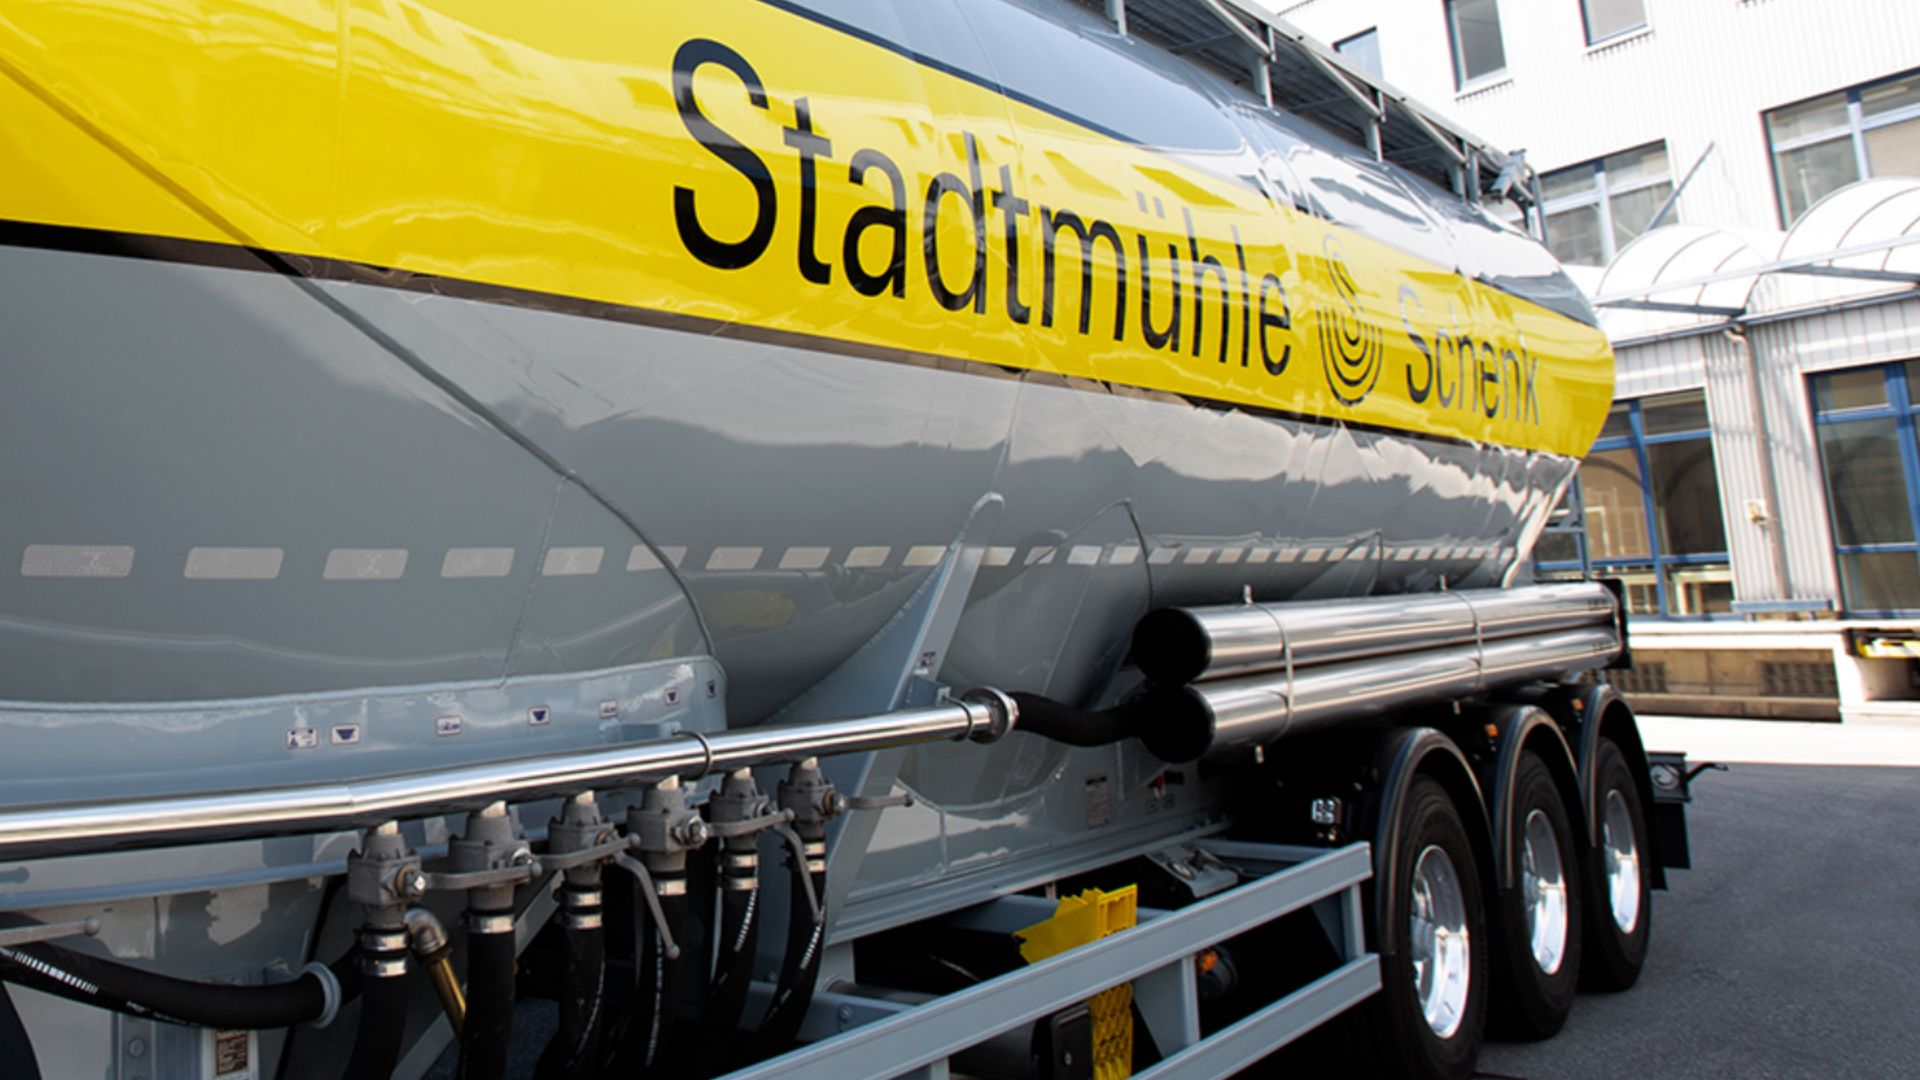 Stadtmühle Schenk AG has been acquired by Kowema AG